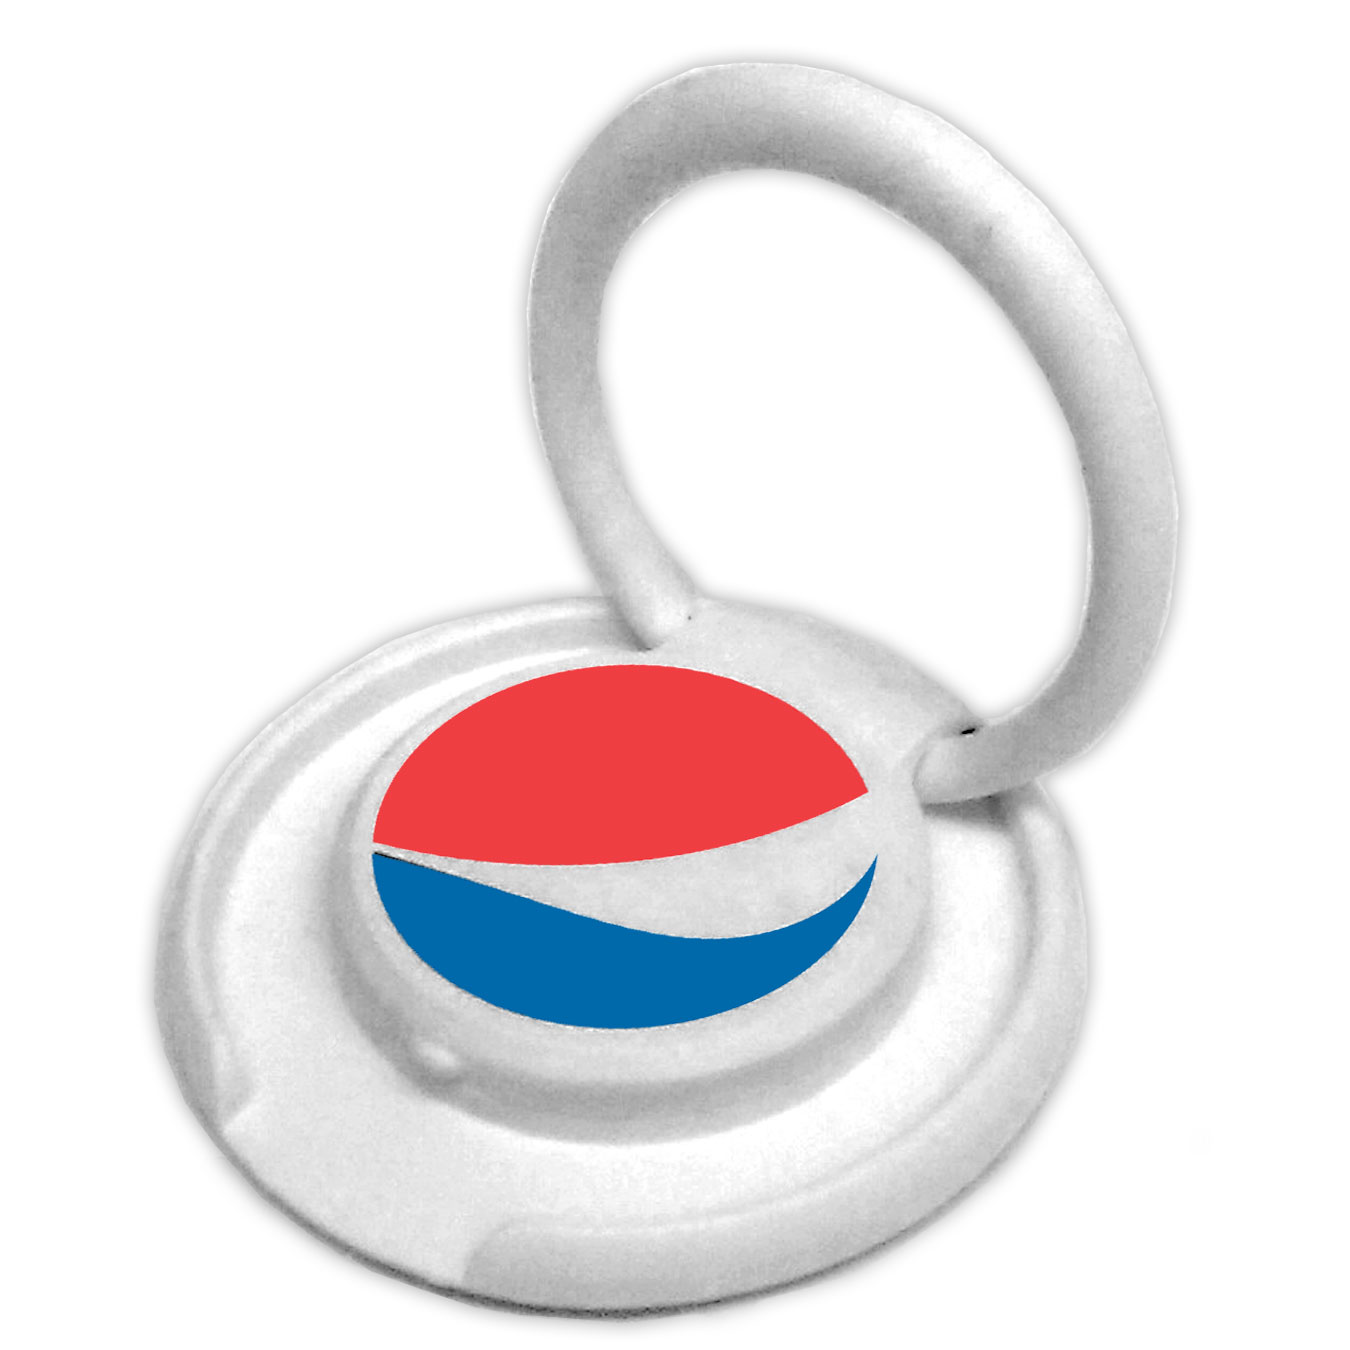 Mobile Phone Ring Holder - Pepsi Globe